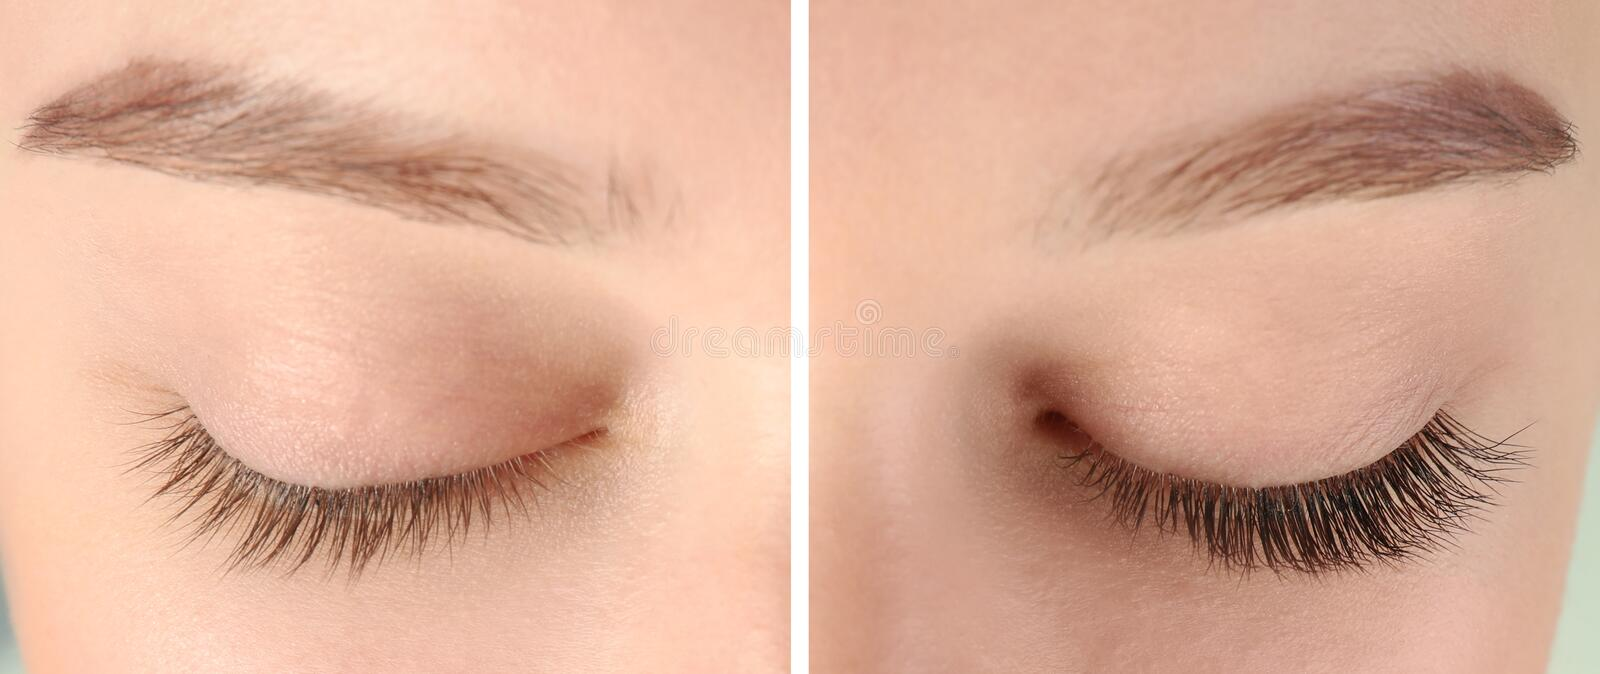 Young woman with beautiful eyelashes, closeup. royalty free stock photography